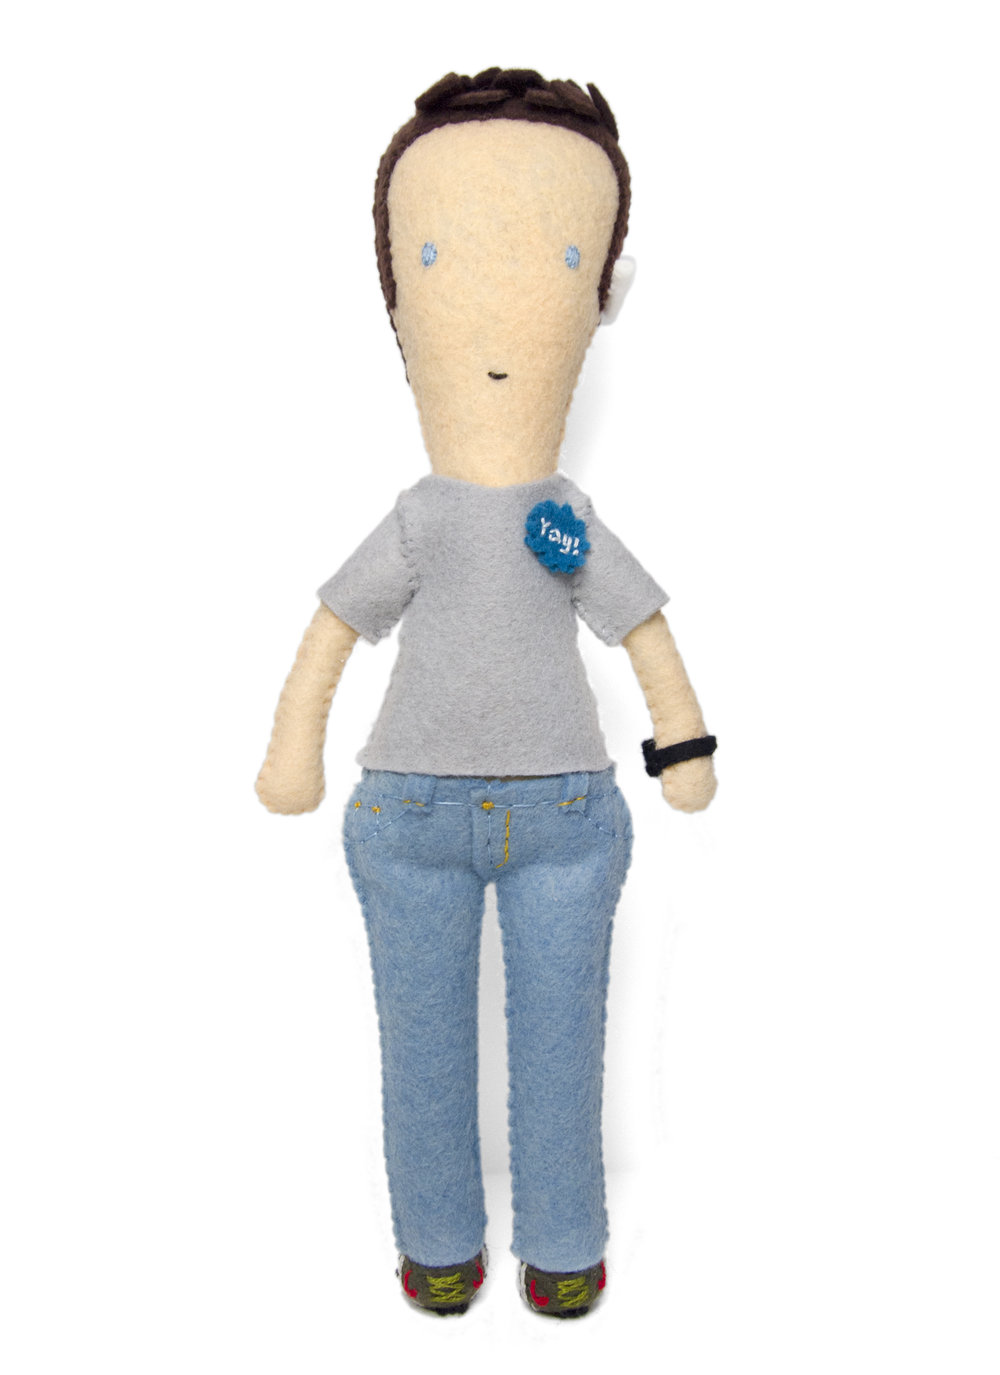 MOO Inc. employee appreciation personalized doll portrait.